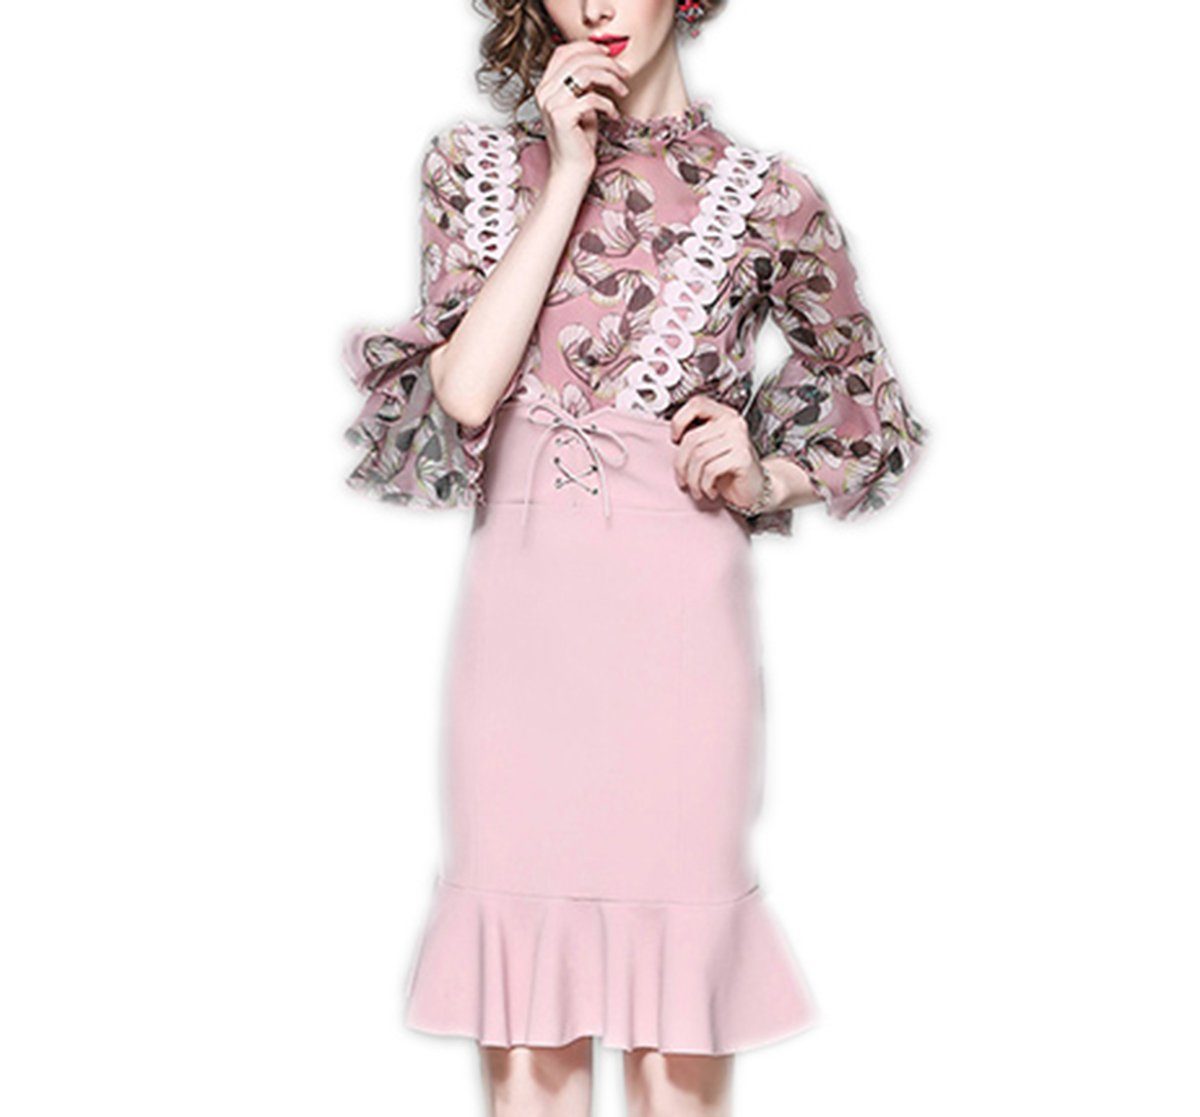 Weing Spring Summer Woman Print Pink Blouse Lace Strap Pink Skirt Overalls Vintage Cute Outfit Pink XL by Weing